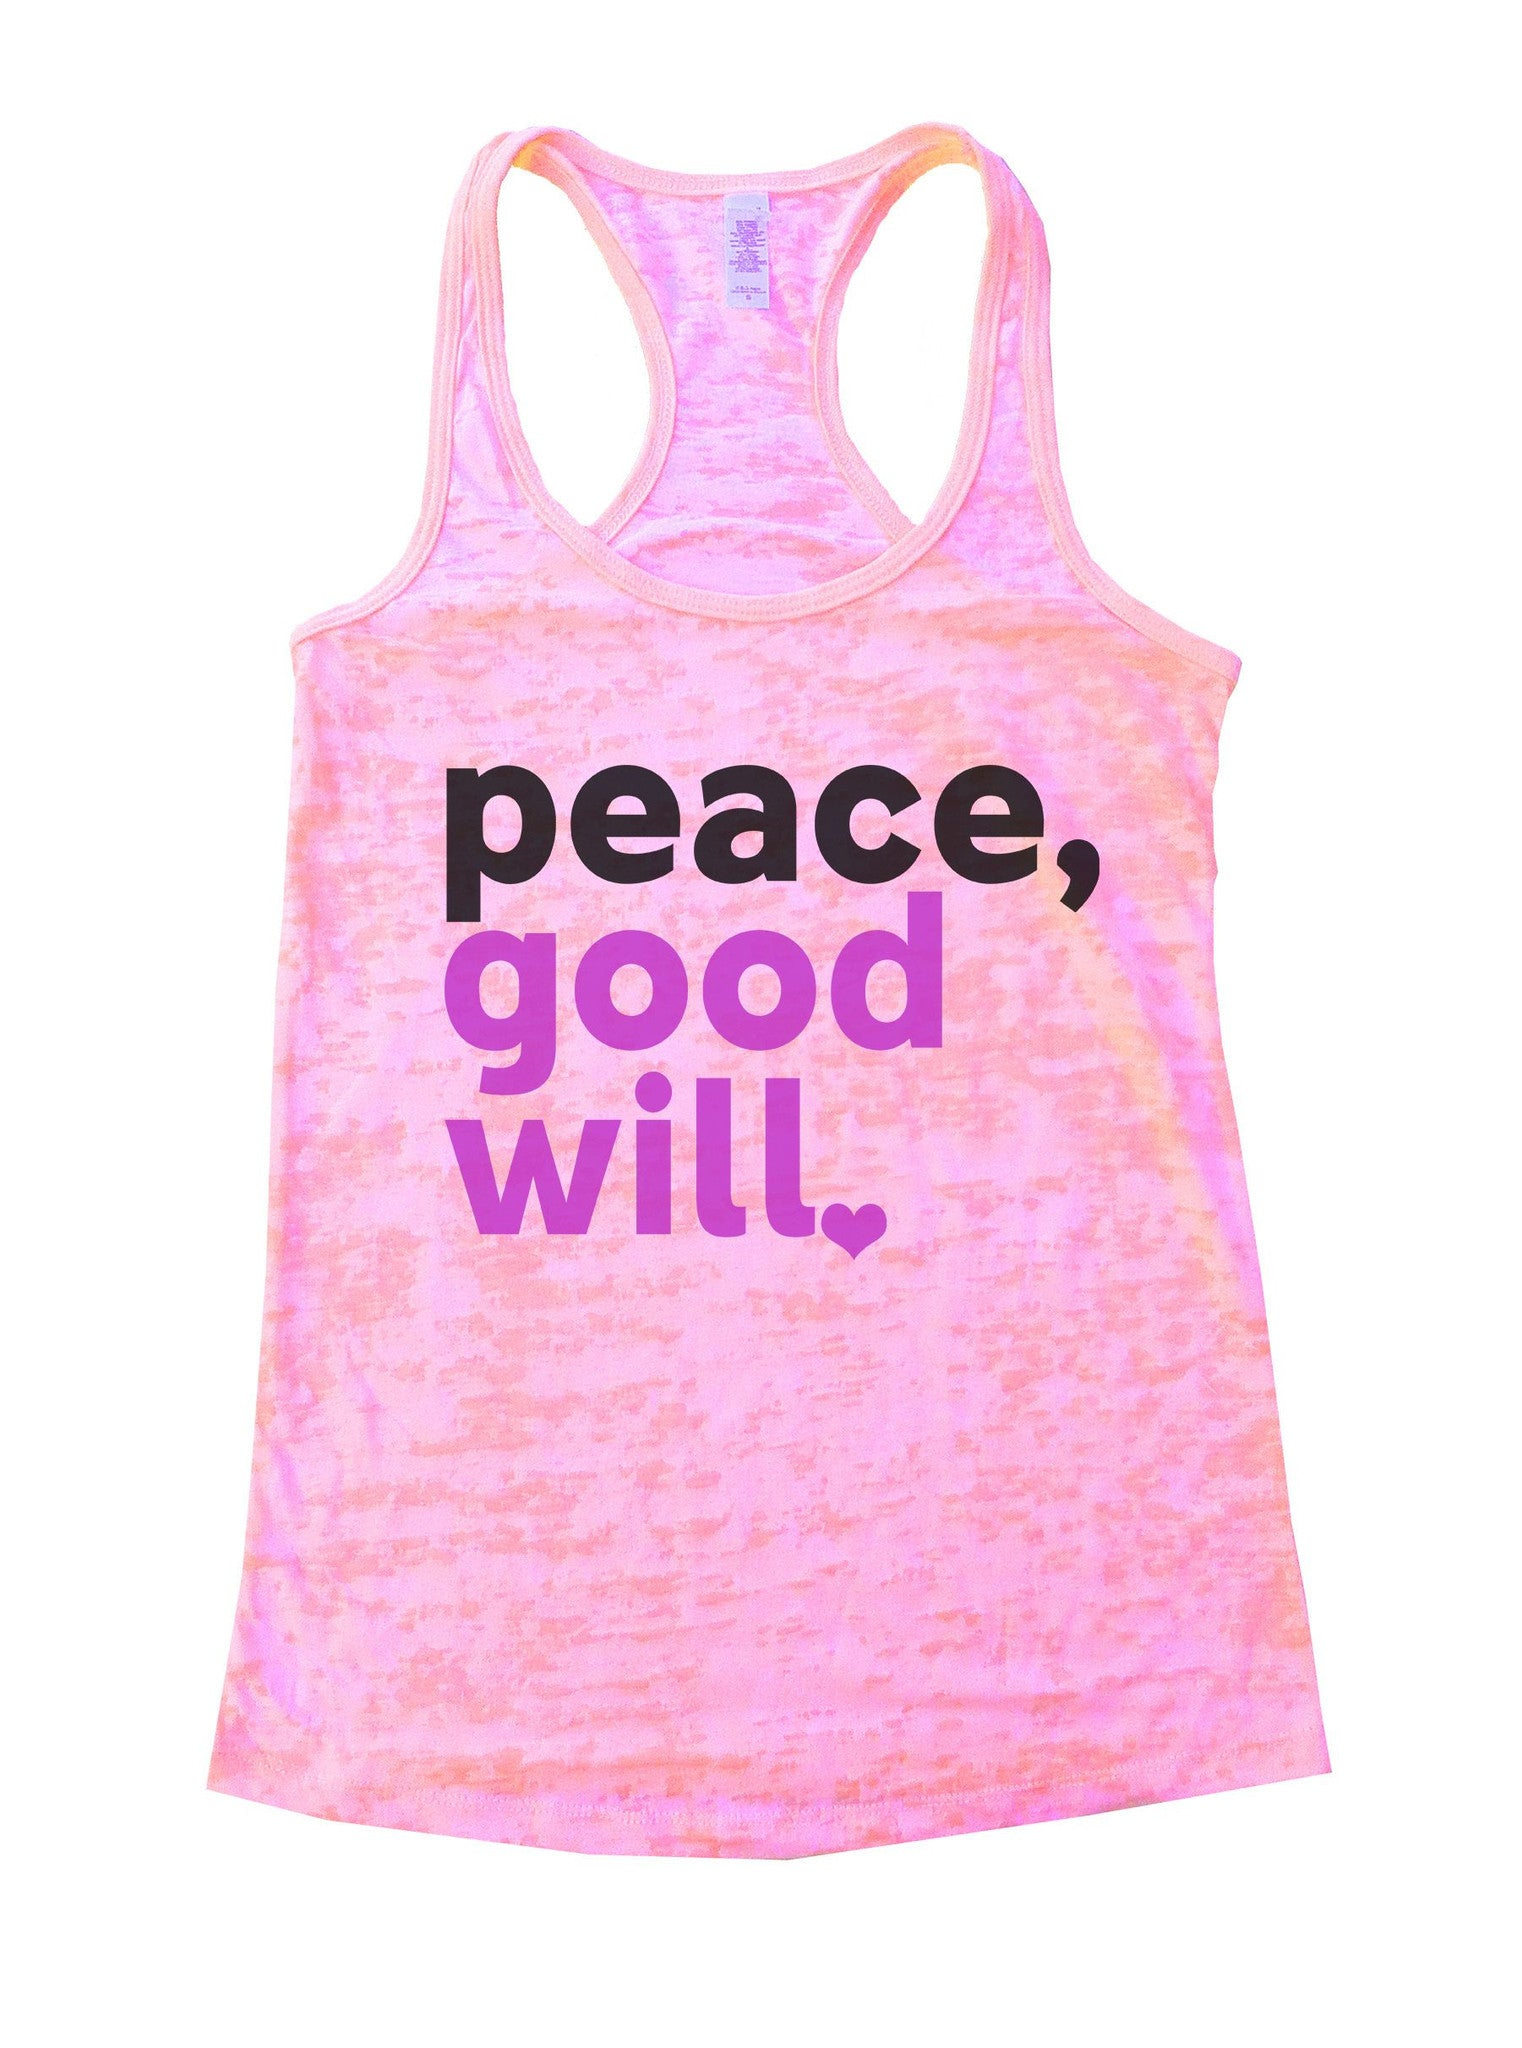 Peace, Good Will Burnout Tank Top By BurnoutTankTops.com - 1078 - Funny Shirts Tank Tops Burnouts and Triblends  - 2